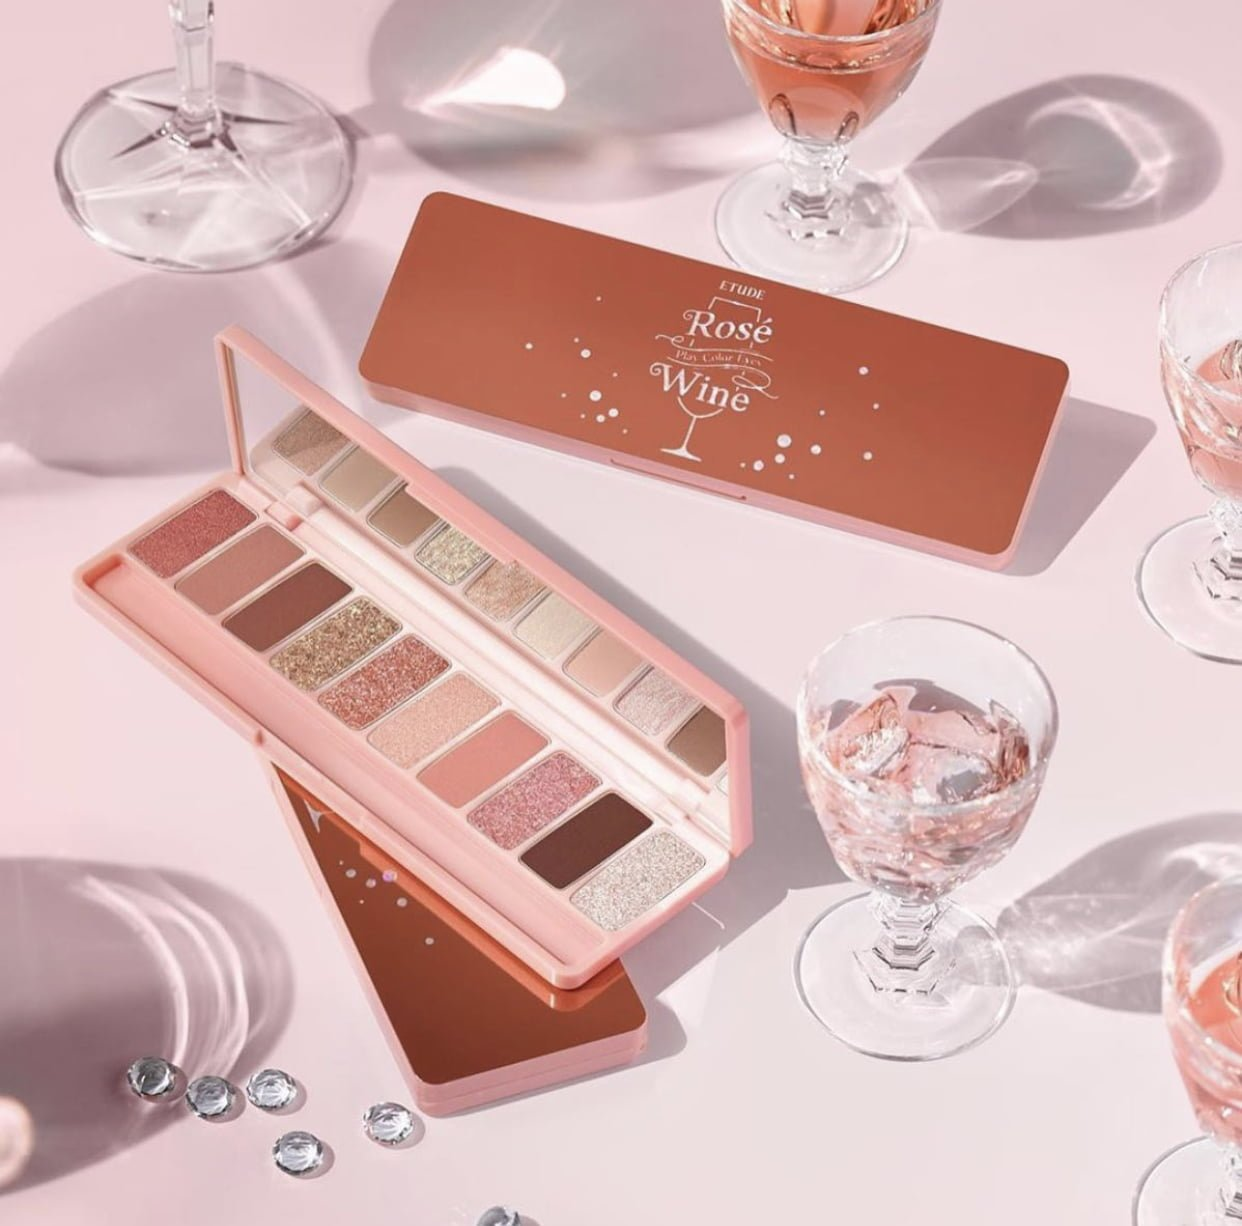 Etude House Rosé Wine Play Color Eyes Palette